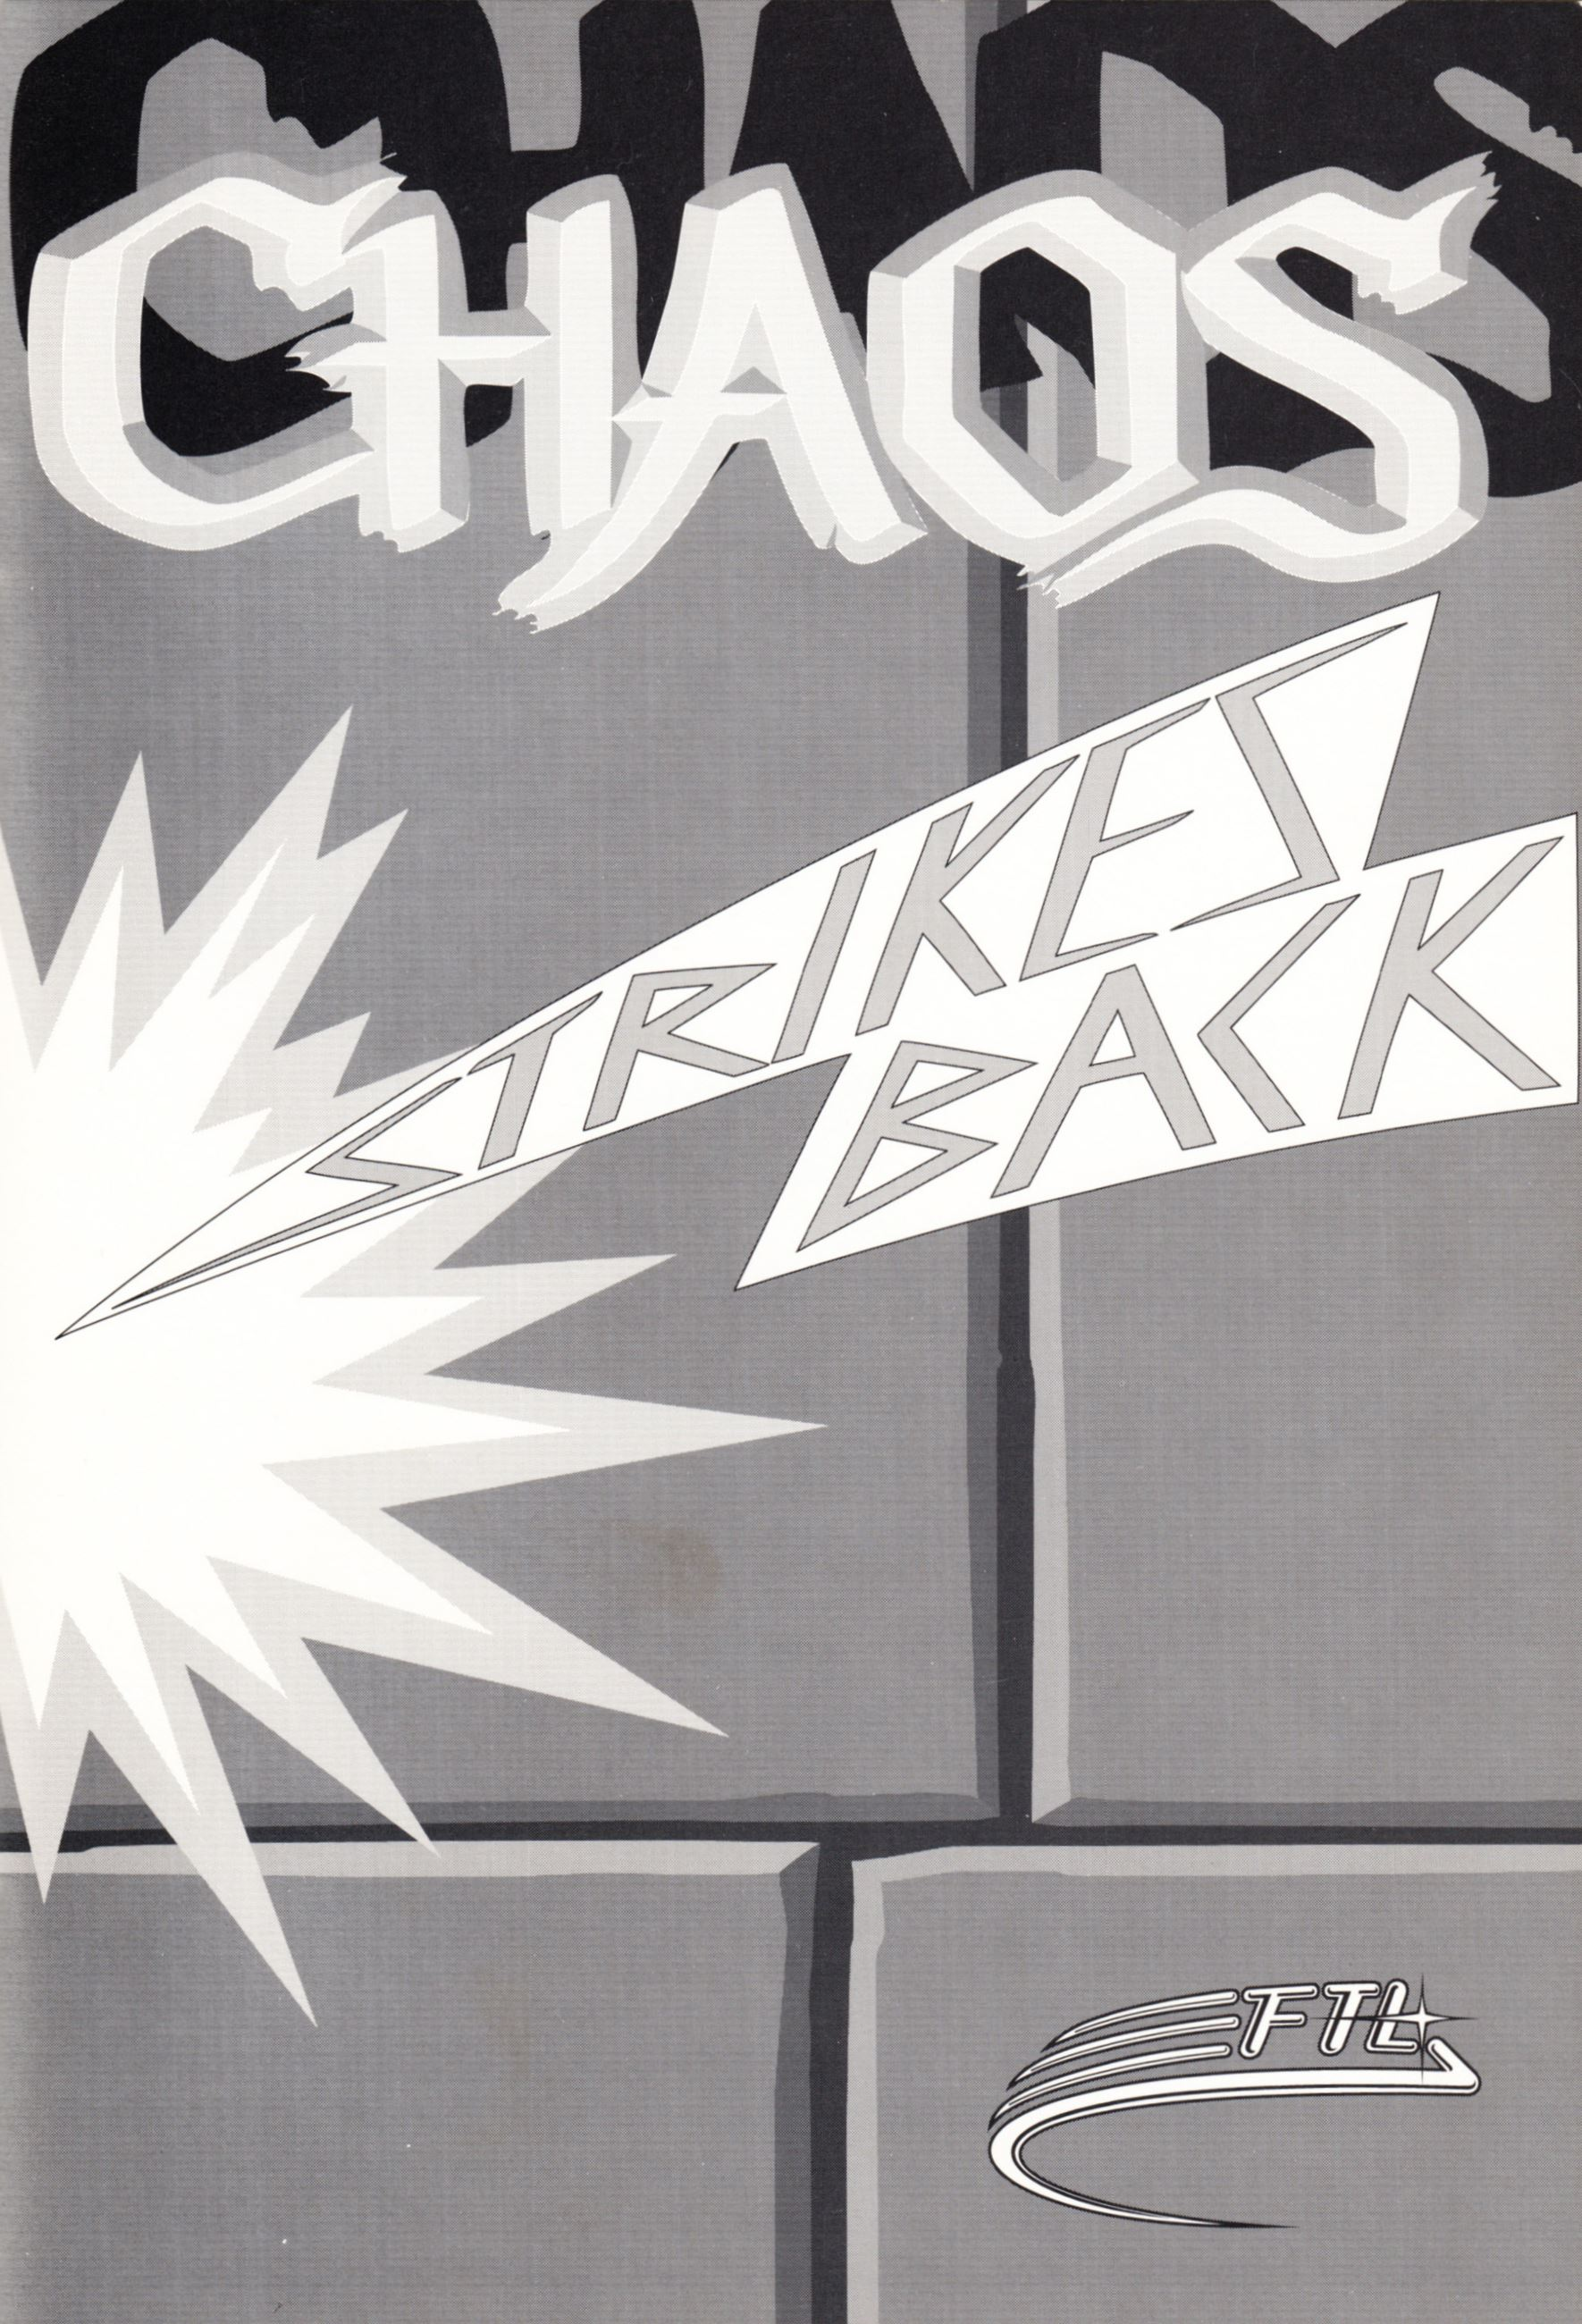 Game - Chaos Strikes Back - UK - Amiga - Manual - Page 001 - Scan